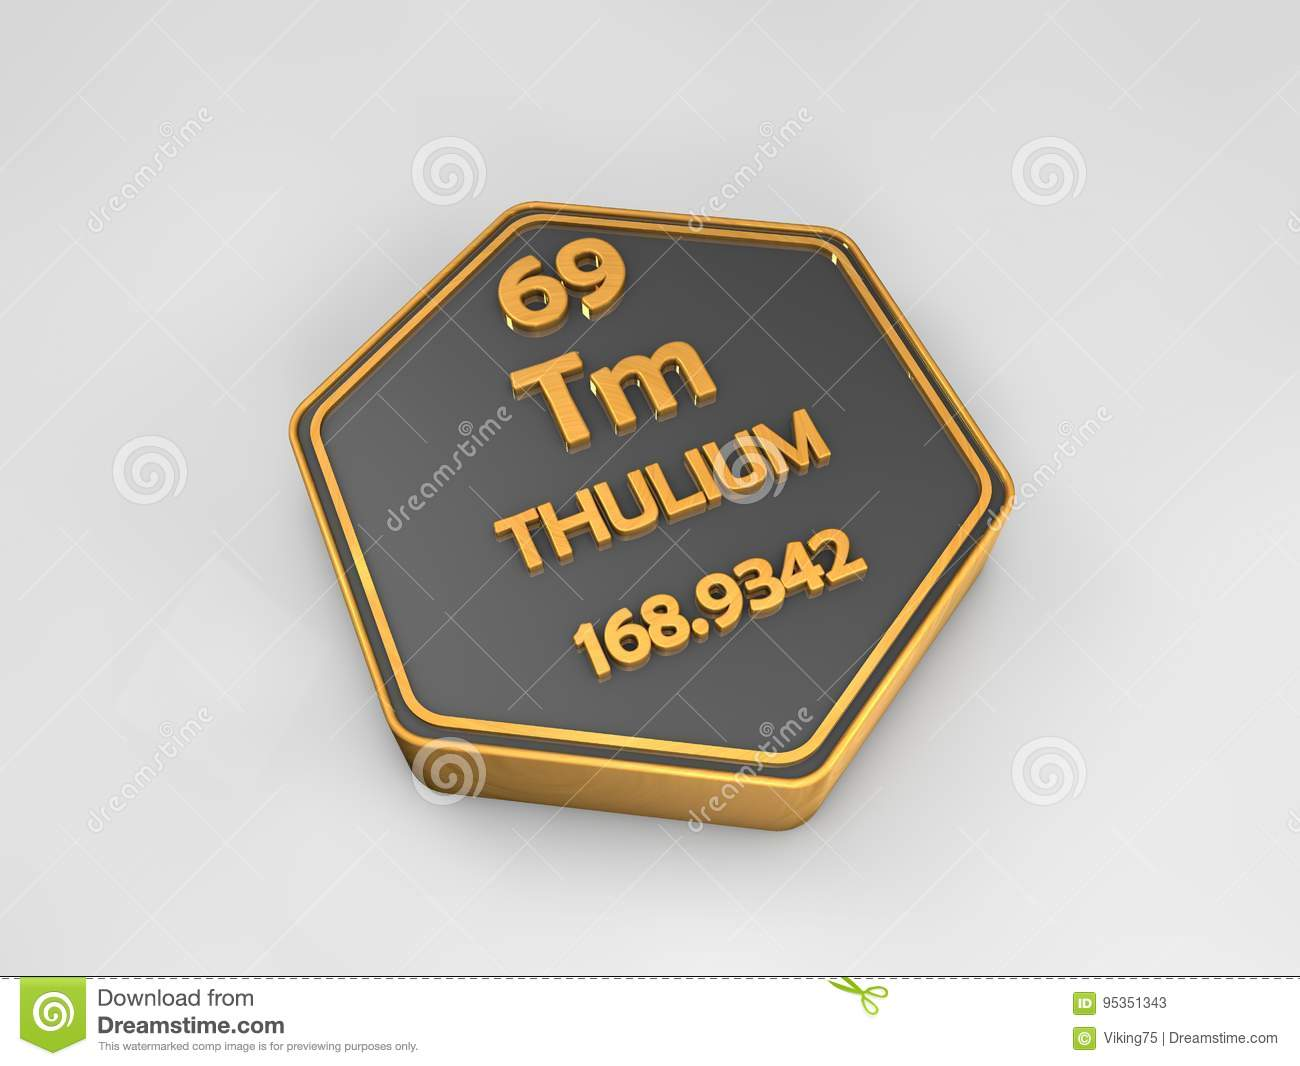 Periodic table thulium gallery periodic table images thulium pm chemical element periodic table hexagonal shape chemical element hexagonal periodic render shape table thulium gamestrikefo Gallery